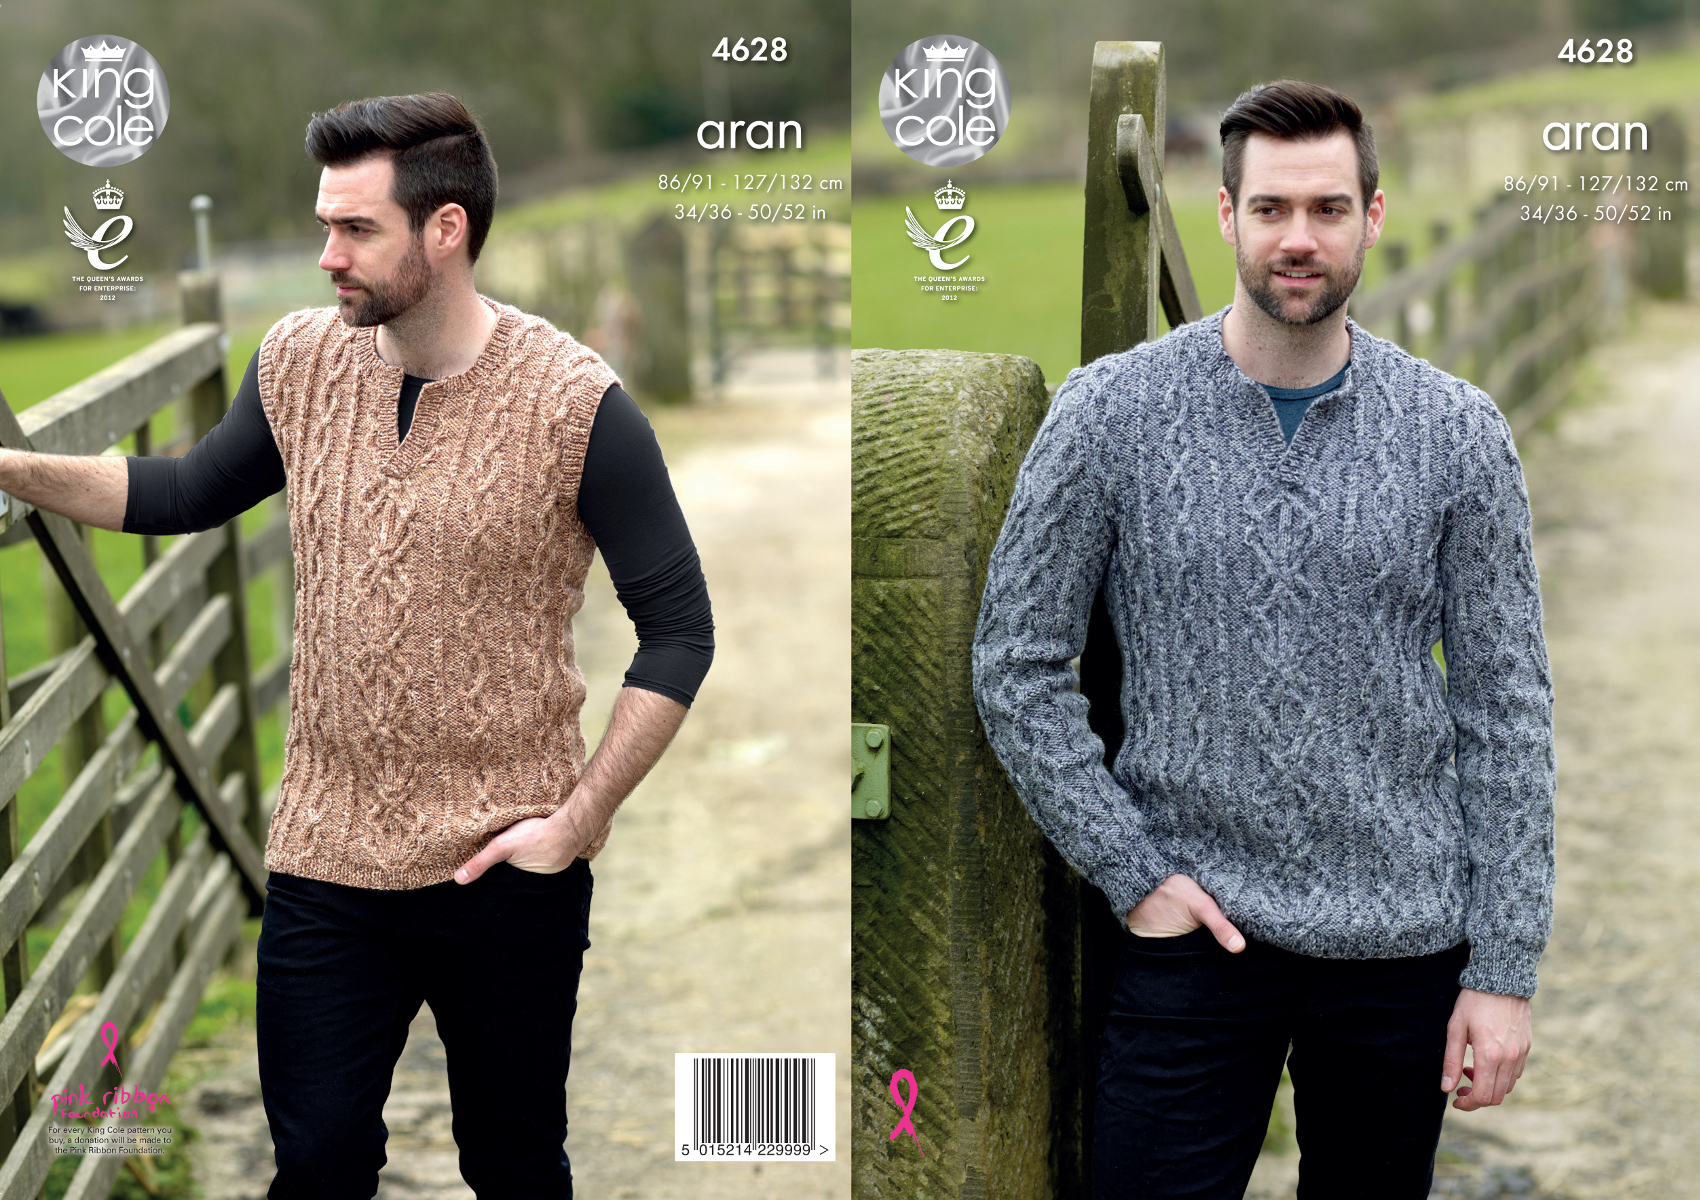 Mens cable detail v neck sweater slipover aran knitting pattern mens cable detail v neck sweater slipover aran knitting pattern king cole 4628 bankloansurffo Image collections